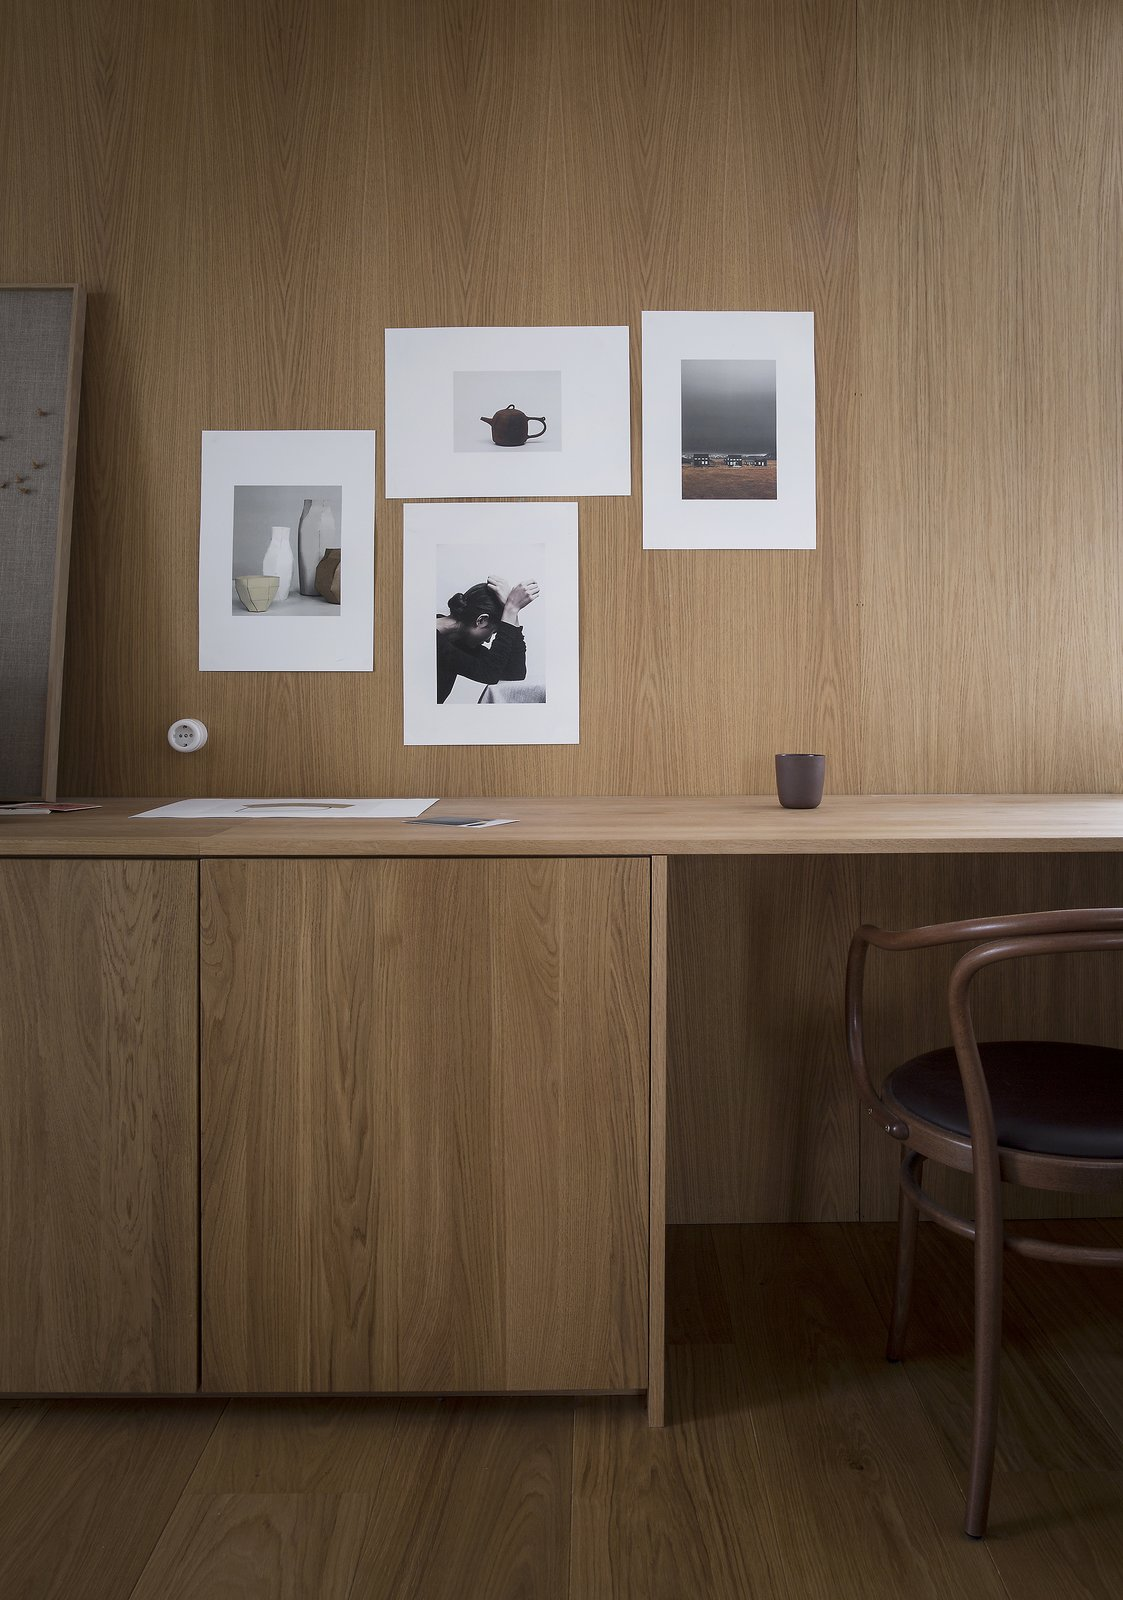 Office, Study Room Type, Chair, Medium Hardwood Floor, and Desk  Photos from A Cubic Dwelling in Norway Just Oozes Hygge